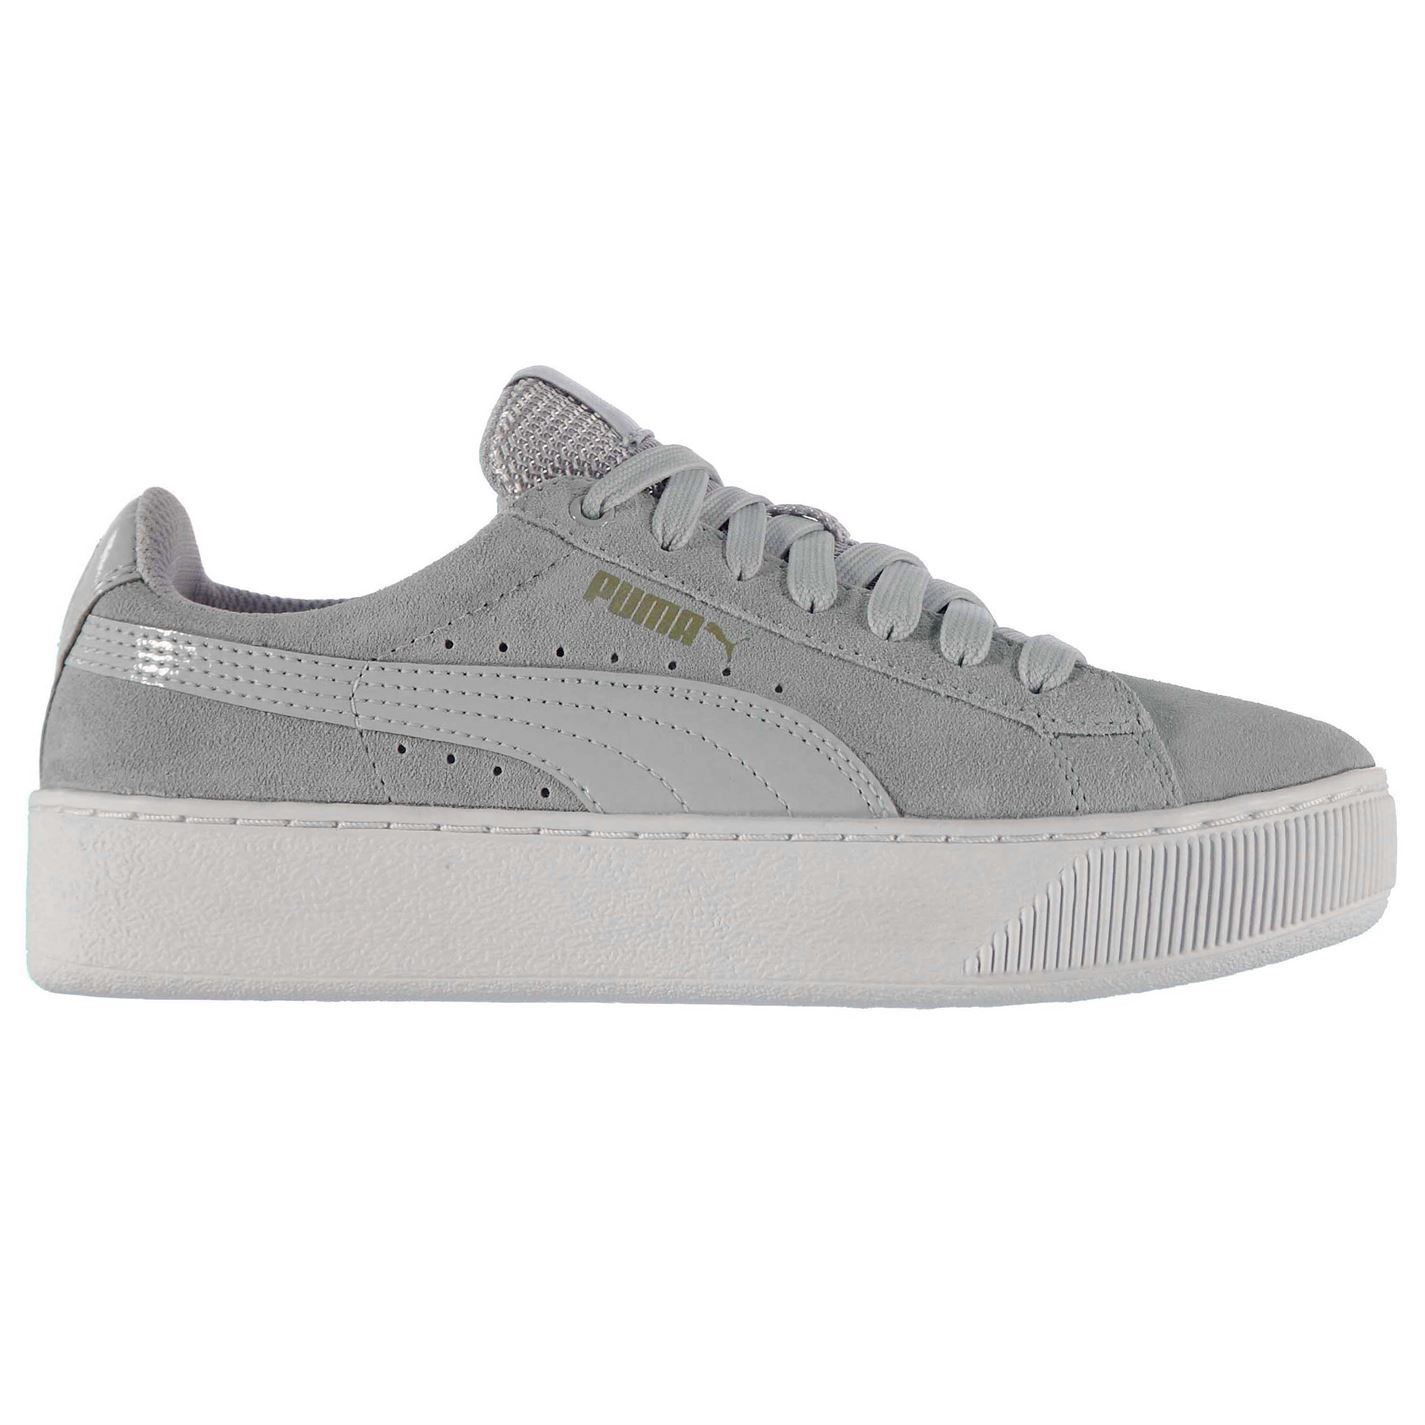 d43e2416e12a ... Puma Vikky Platform Trainers Womens Grey Violet Casual Sneakers Shoes  Footwear ...